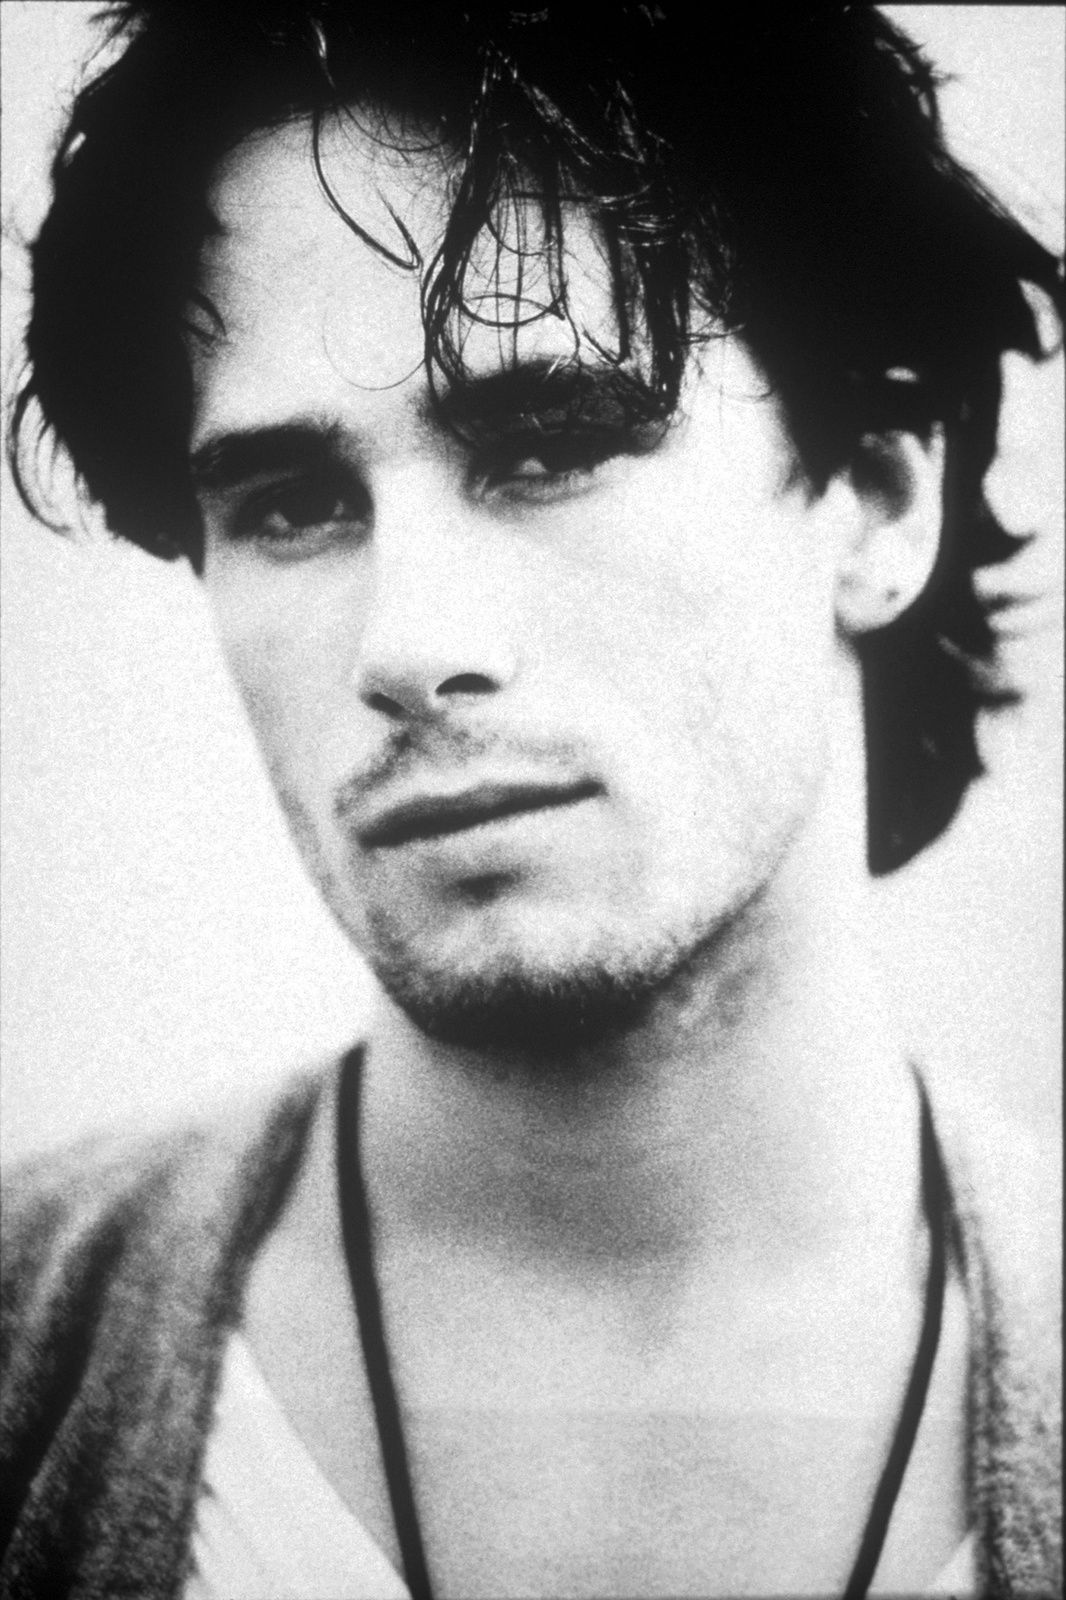 Jeff Buckley was an American singer-songwriter and guitarist.